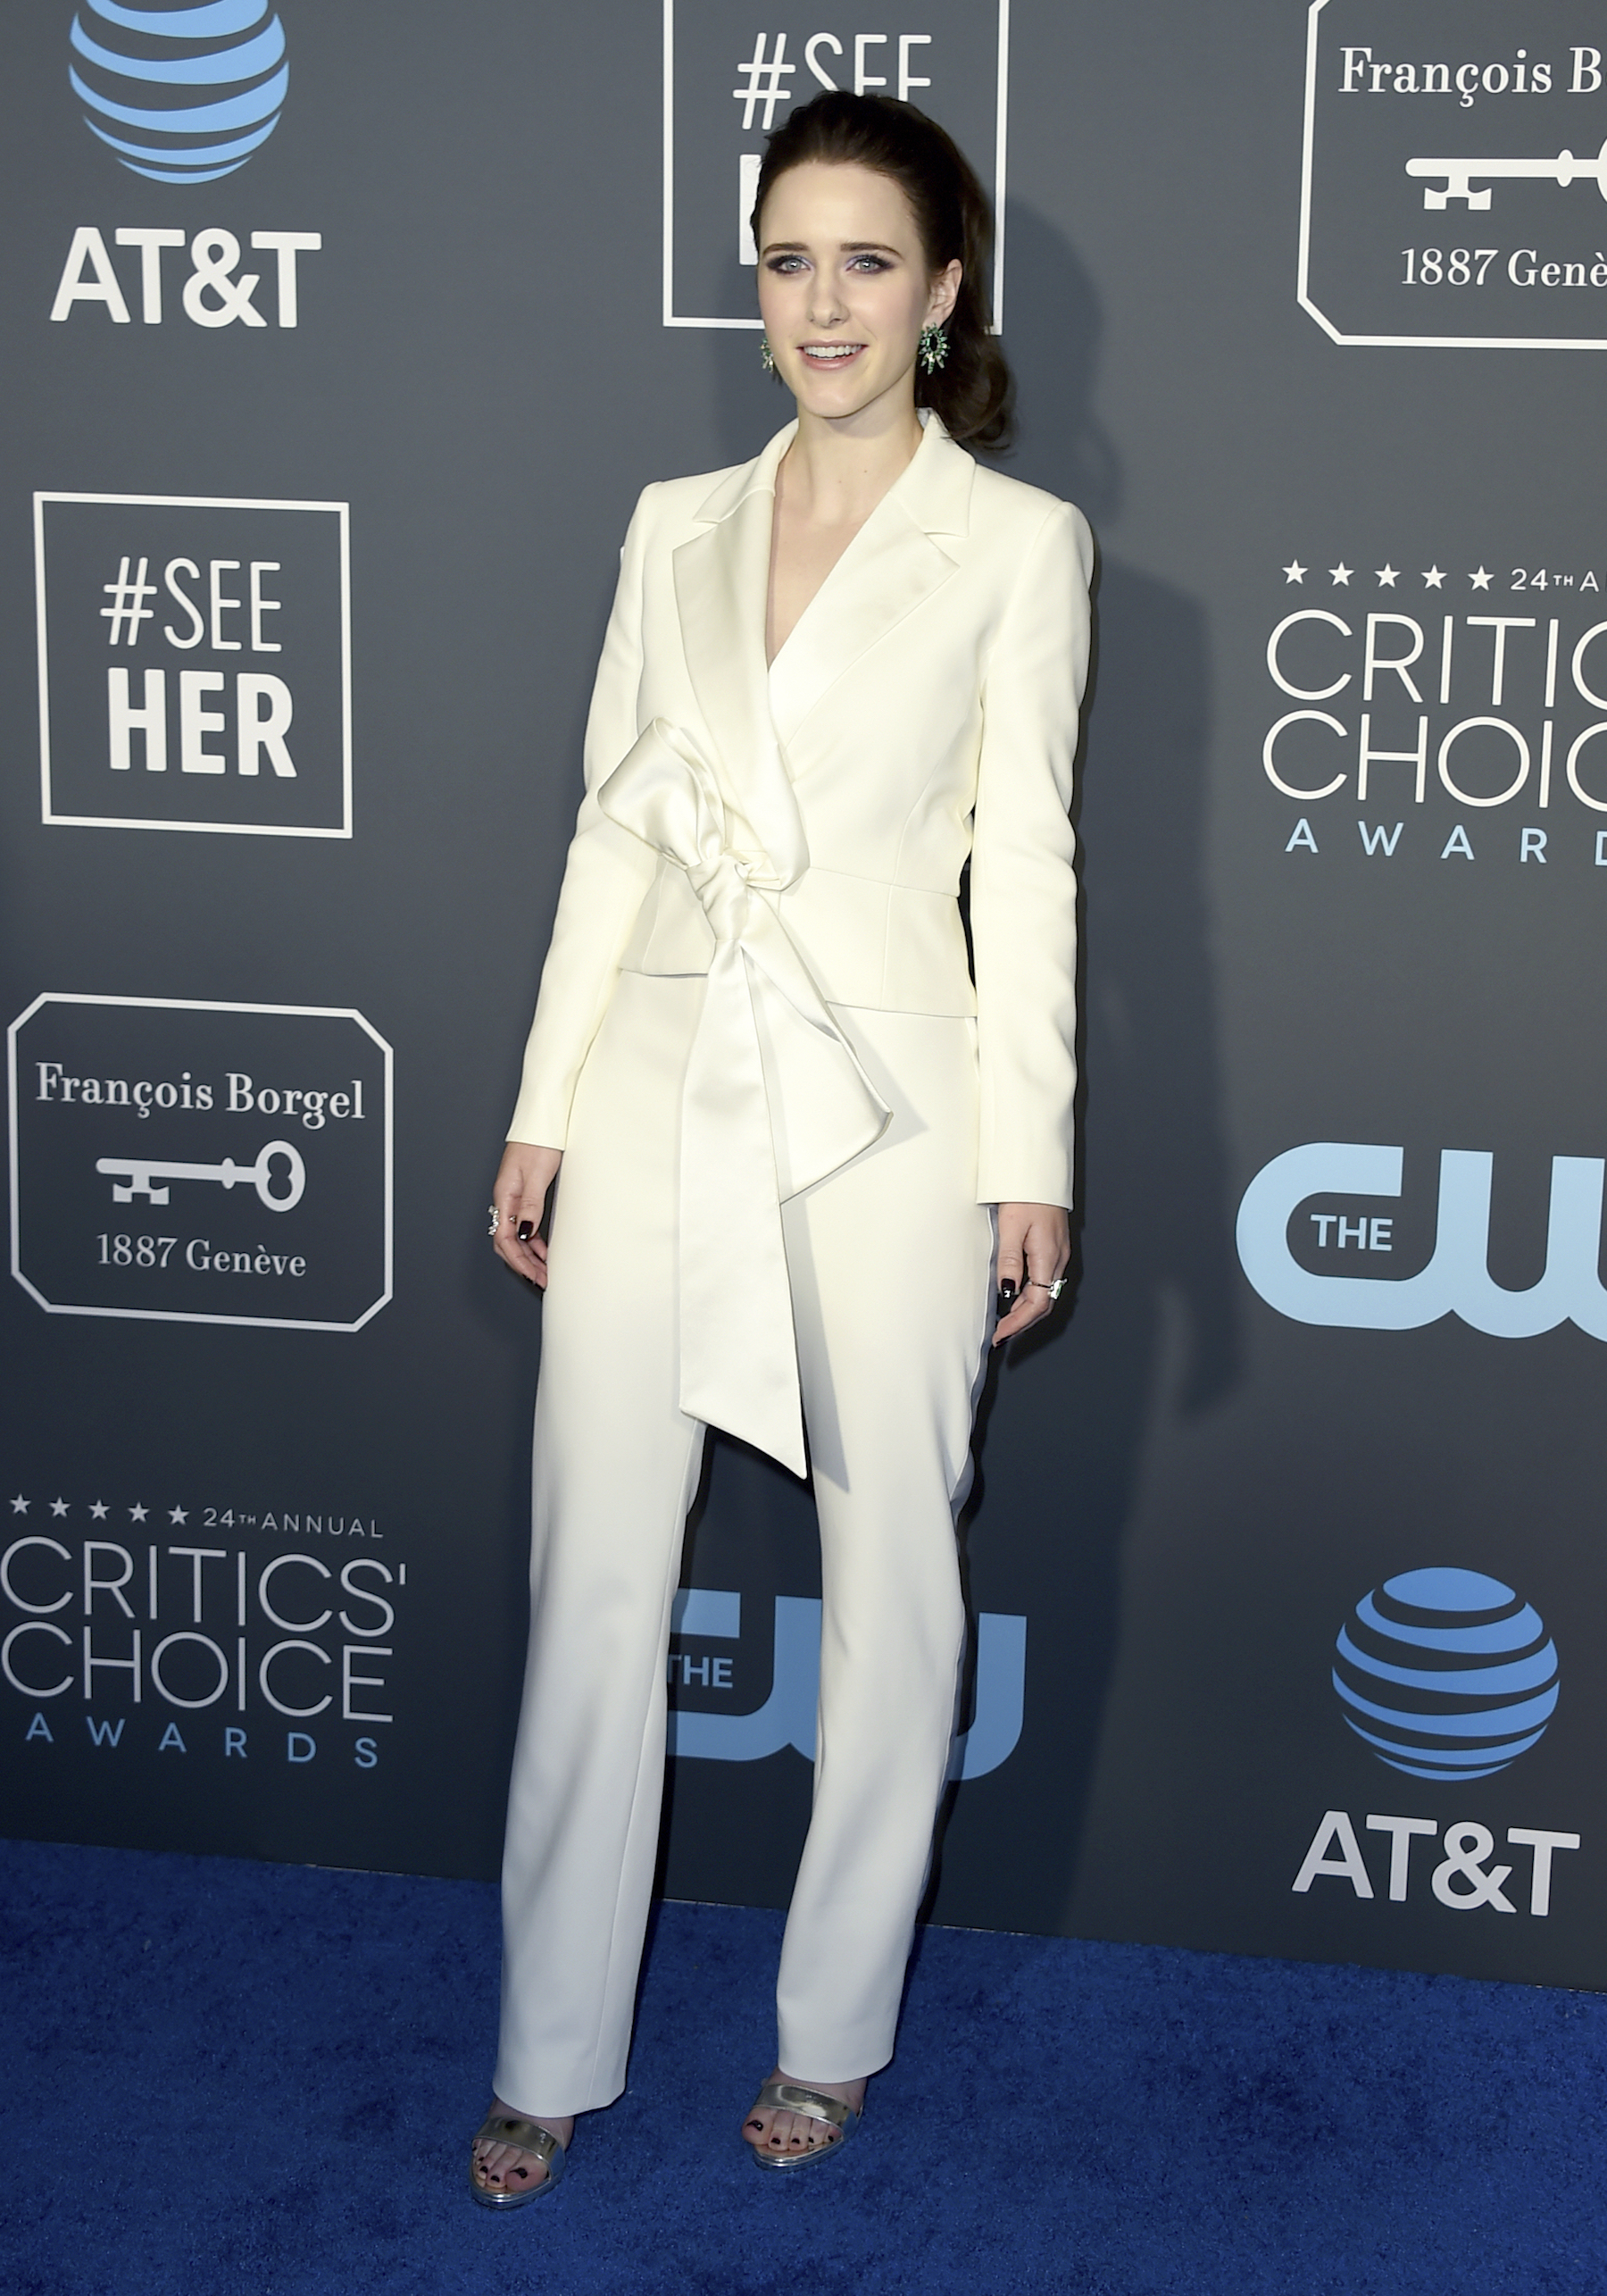 <div class='meta'><div class='origin-logo' data-origin='AP'></div><span class='caption-text' data-credit='Jordan Strauss/Invision/AP'>Rachel Brosnahan arrives at the 24th annual Critics' Choice Awards on Sunday, Jan. 13, 2019, at the Barker Hangar in Santa Monica, Calif.</span></div>